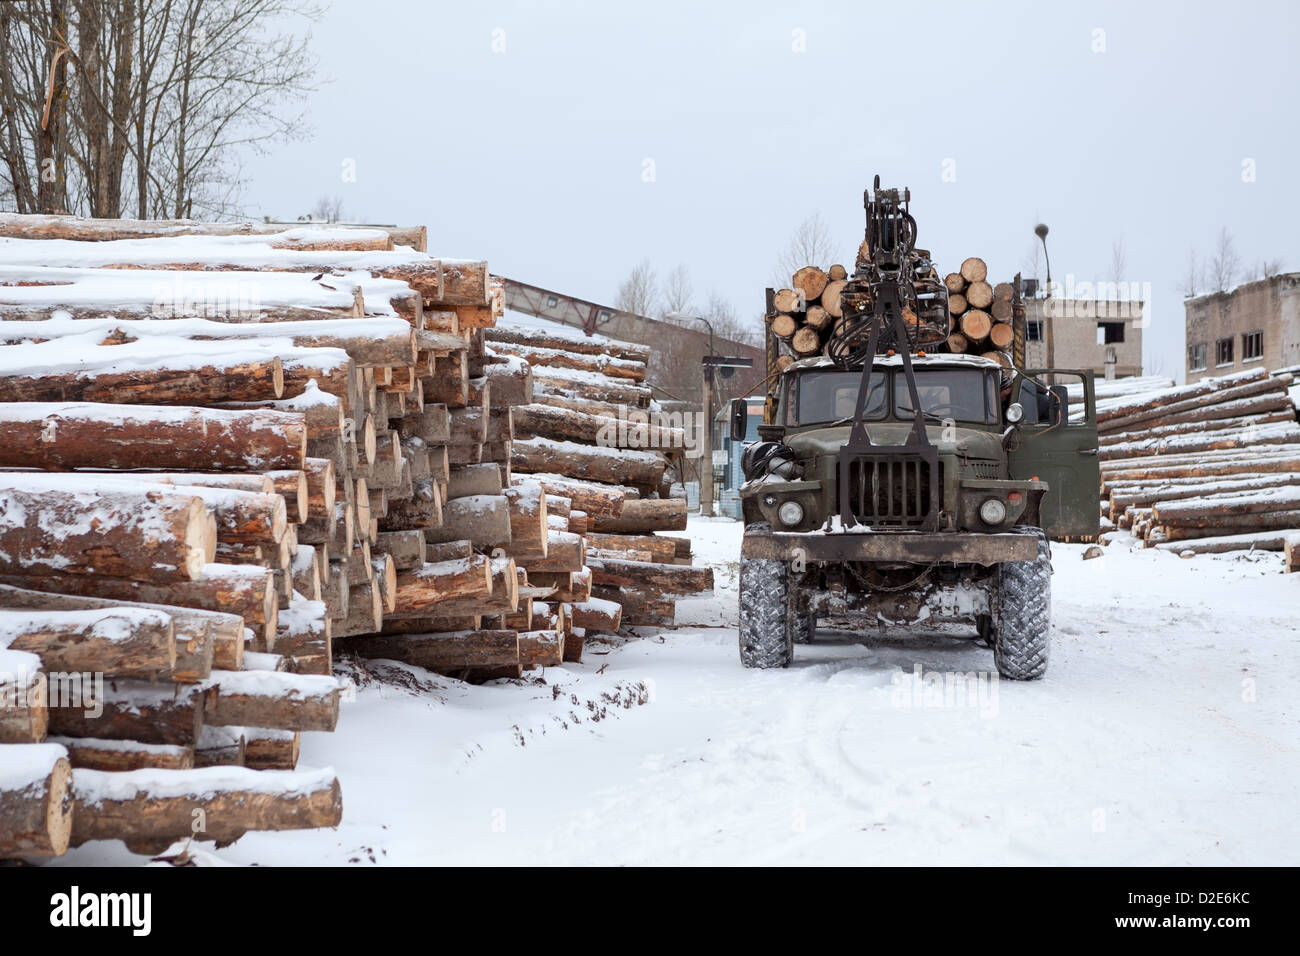 Log loader track with timber in lumber mill winter